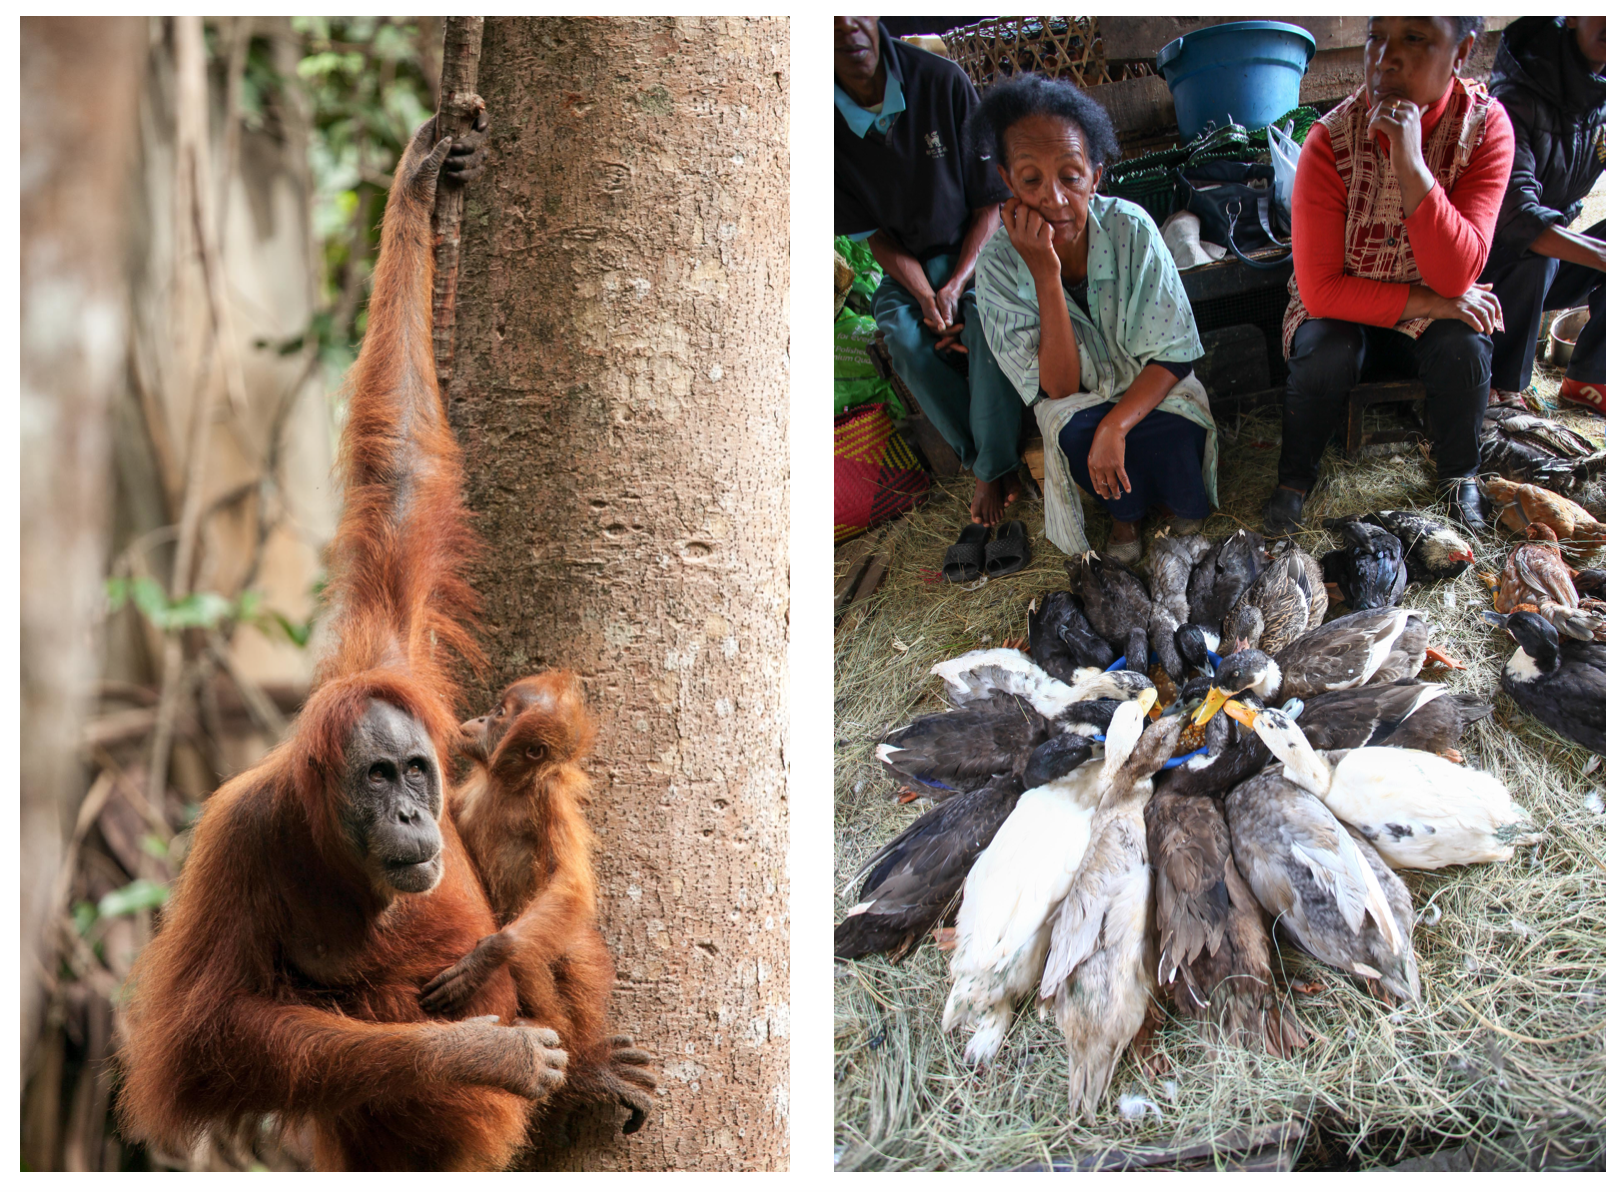 Orangutans in Indonesia, and a wet market in Madagascar. Photos by David Bonnardeaux.